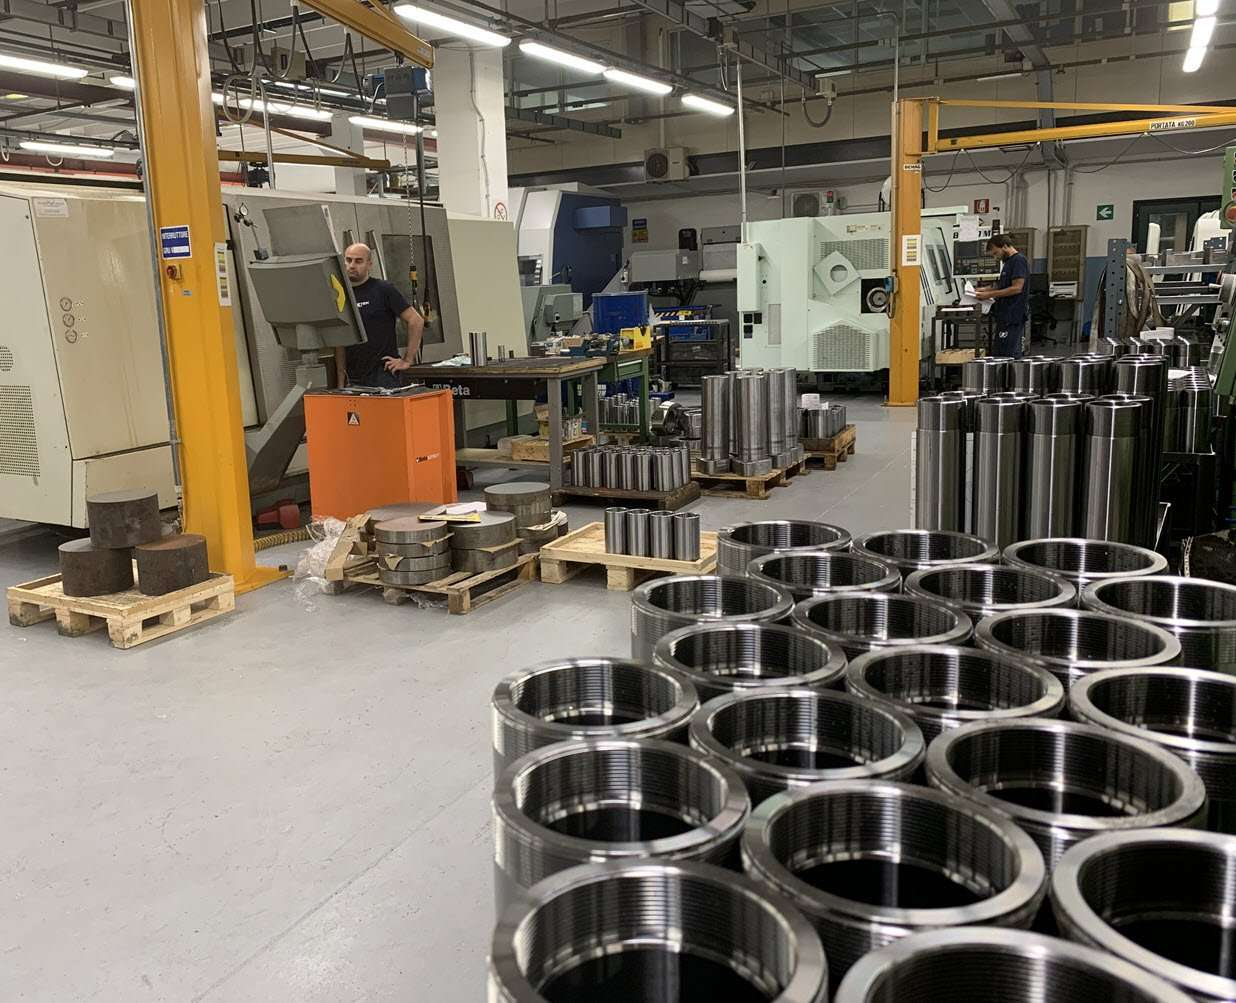 production of hydraulic cylinders